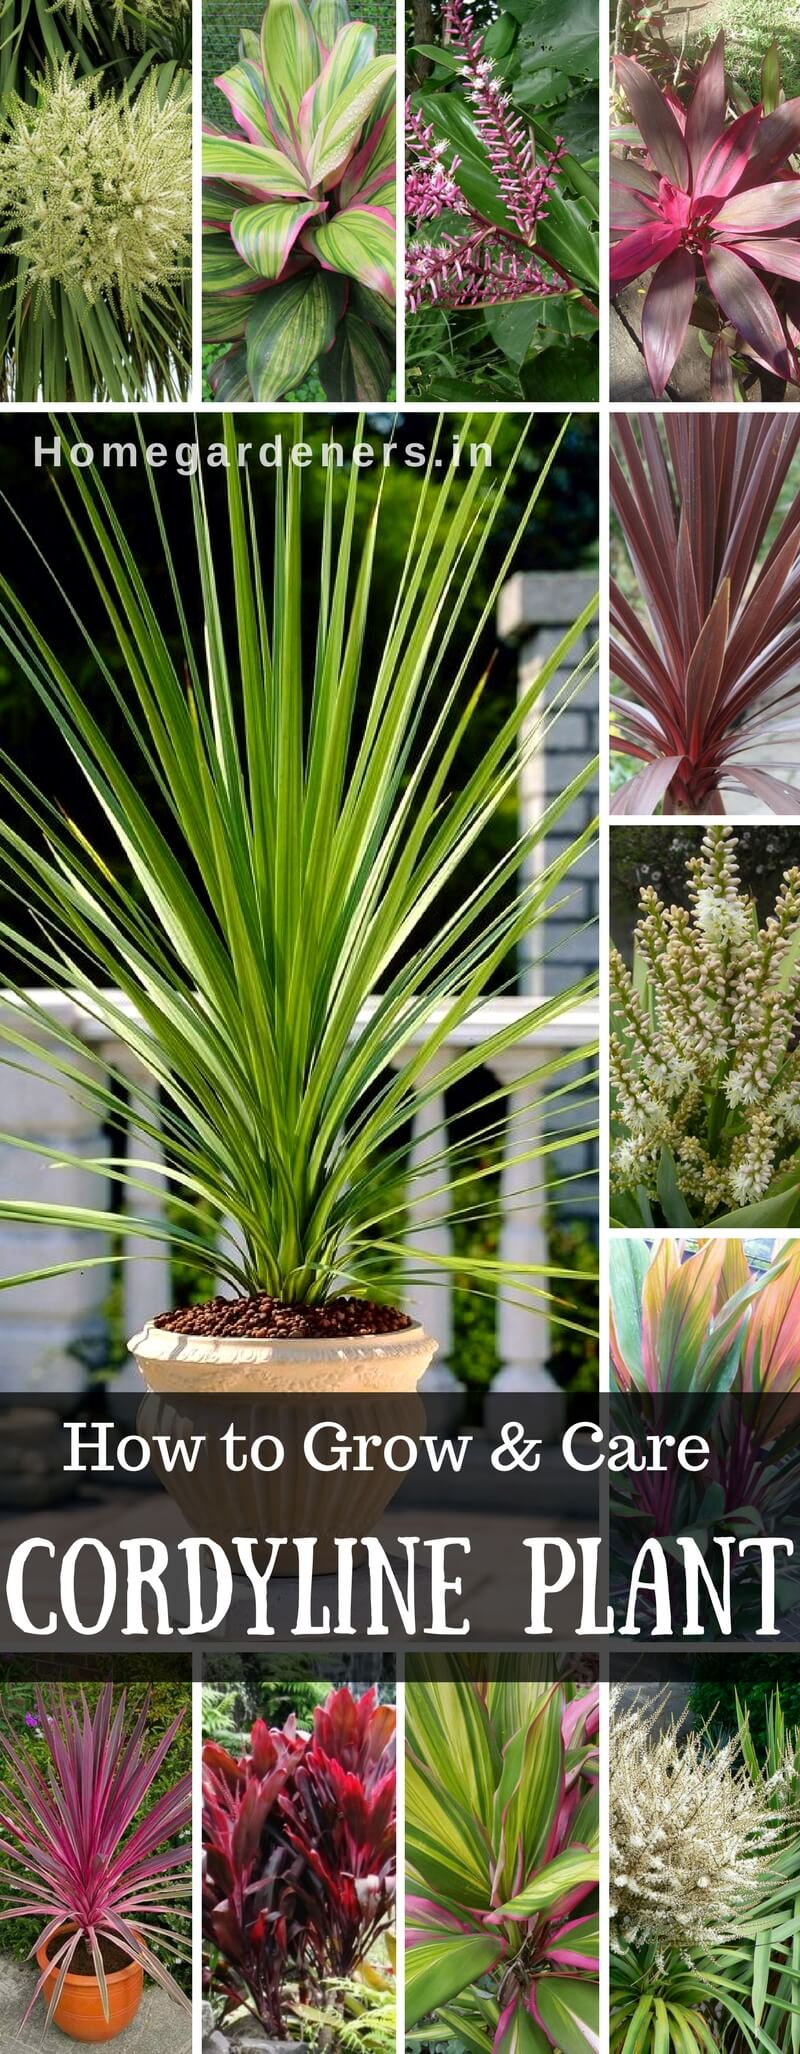 Cordyline - Growing and Caring for the Hawaiian Ti Plant